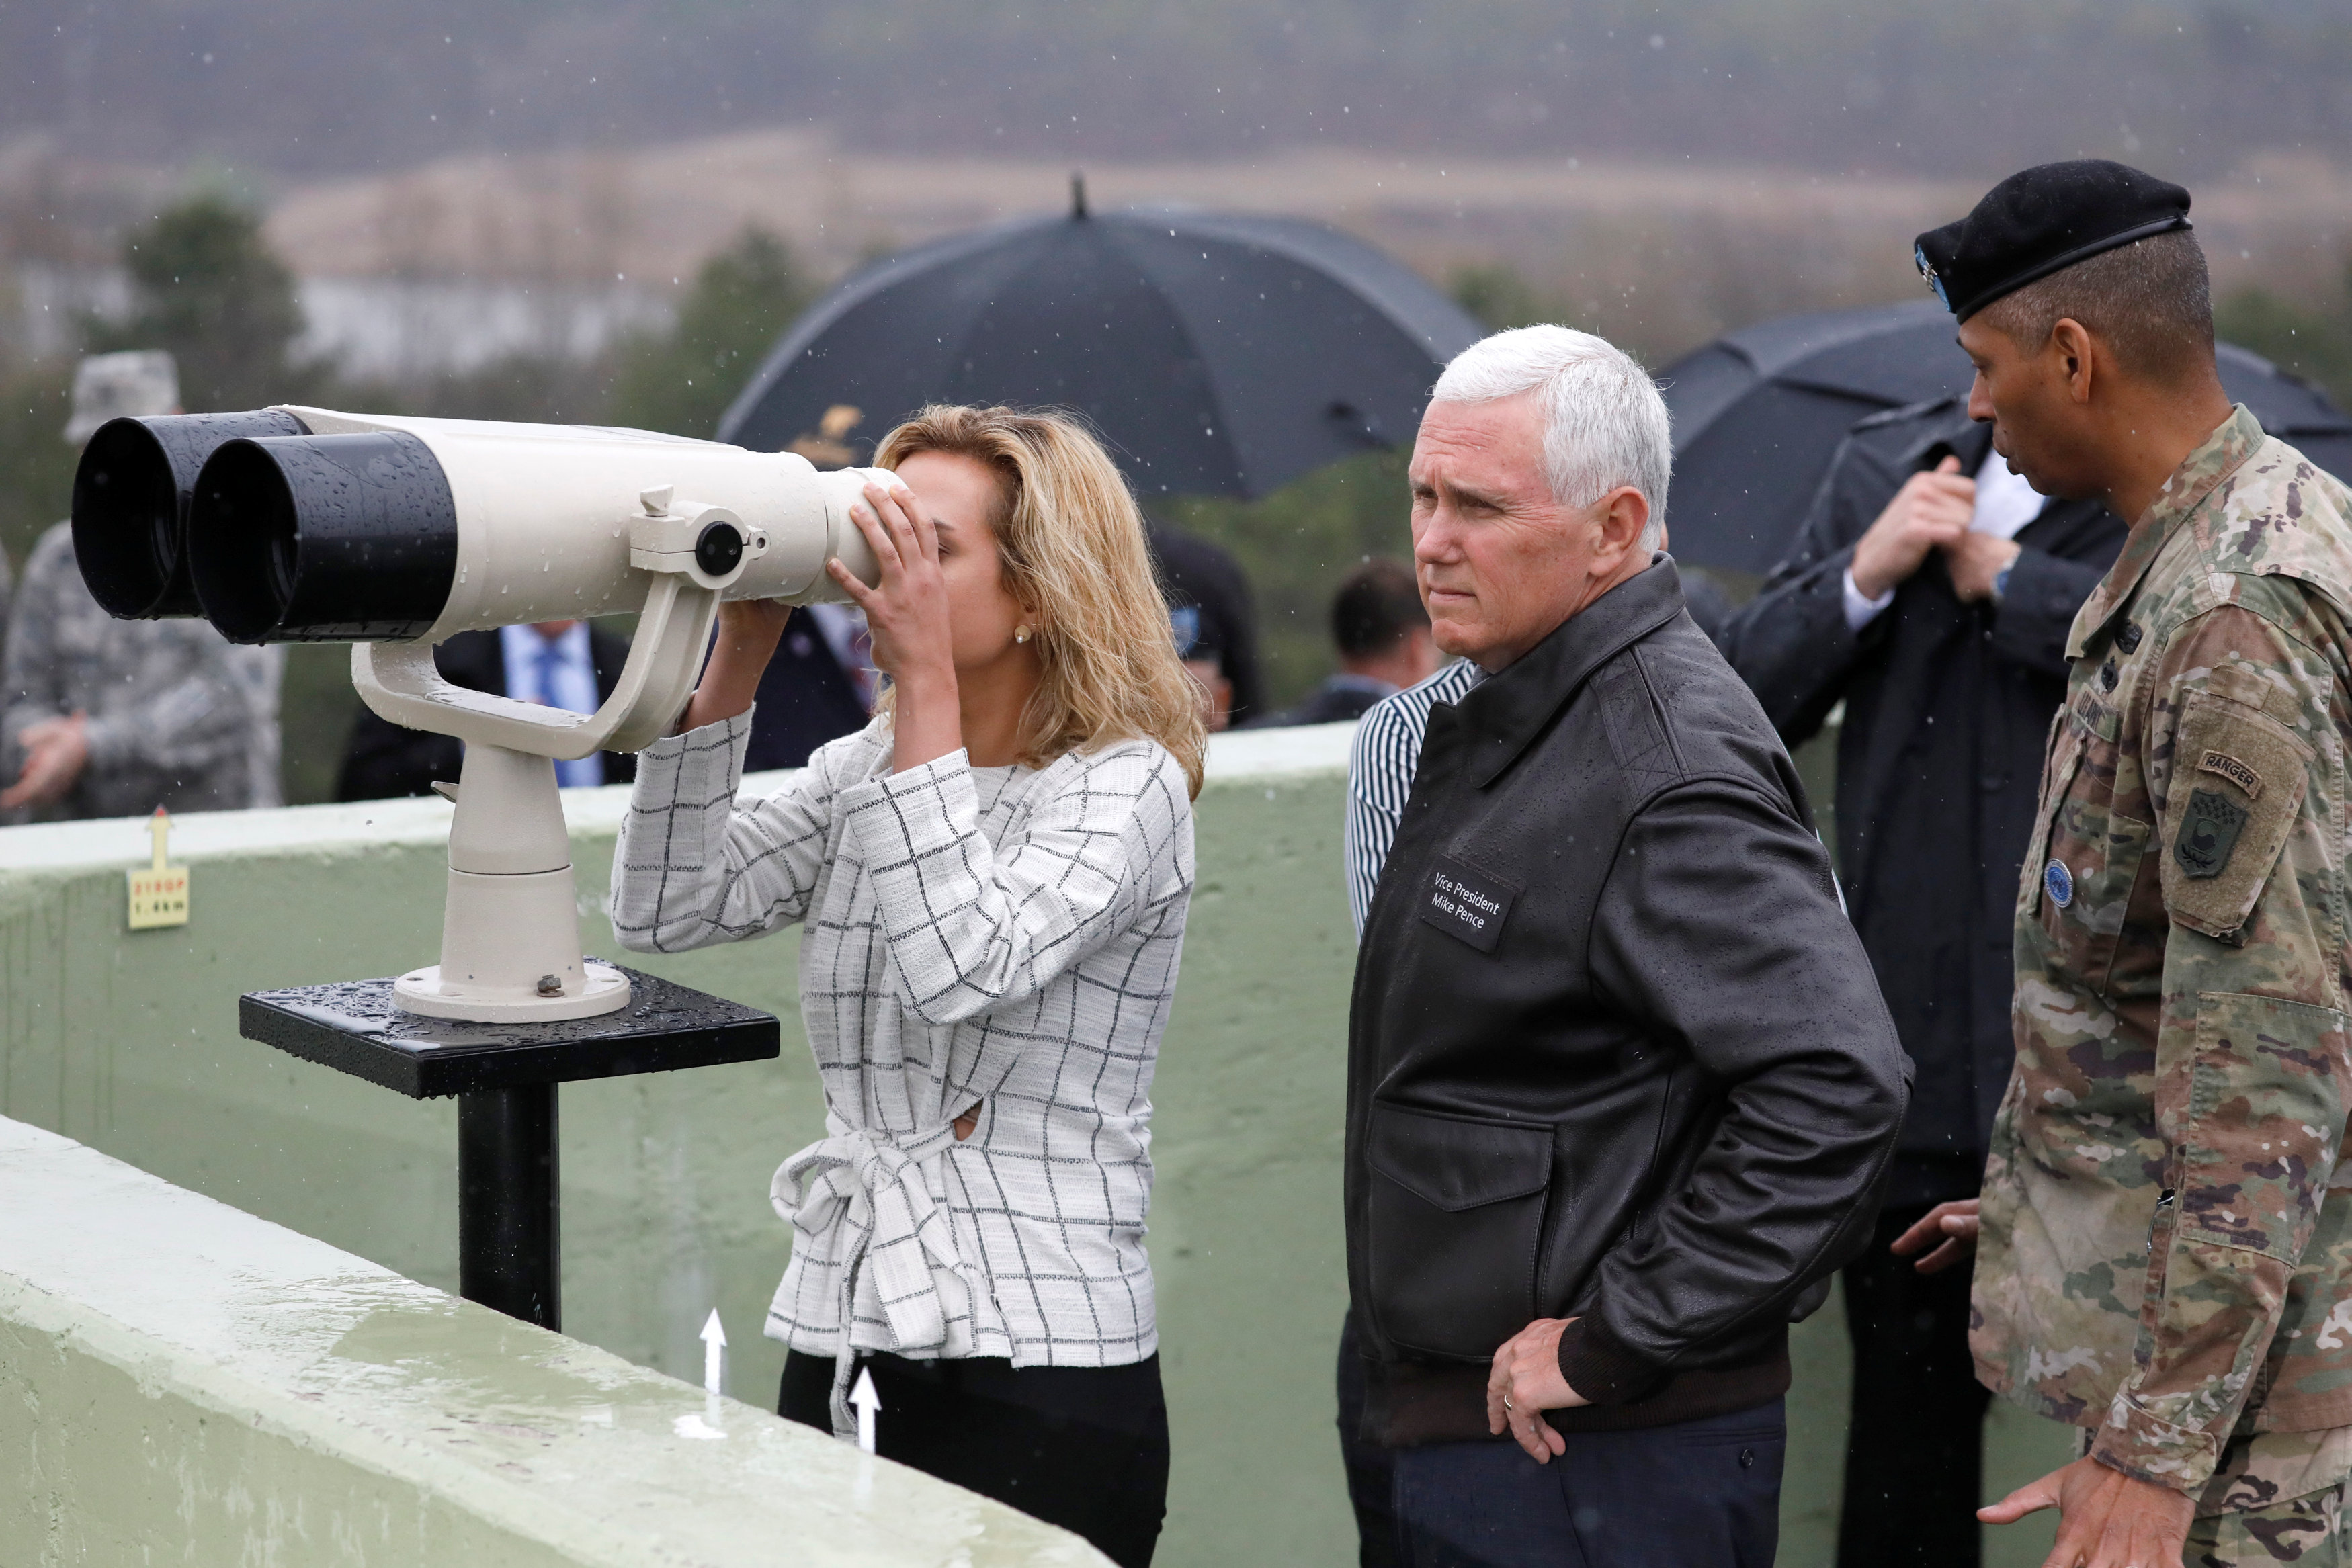 U.S. Vice President Mike Pence stands next to his daughter looking toward the north through a pair of binocular from an observation post inside the demilitarized zone separating the two Koreas, in Paju, South Korea on April 17, 2017.  (REUTERS/Kim Hong-Ji)